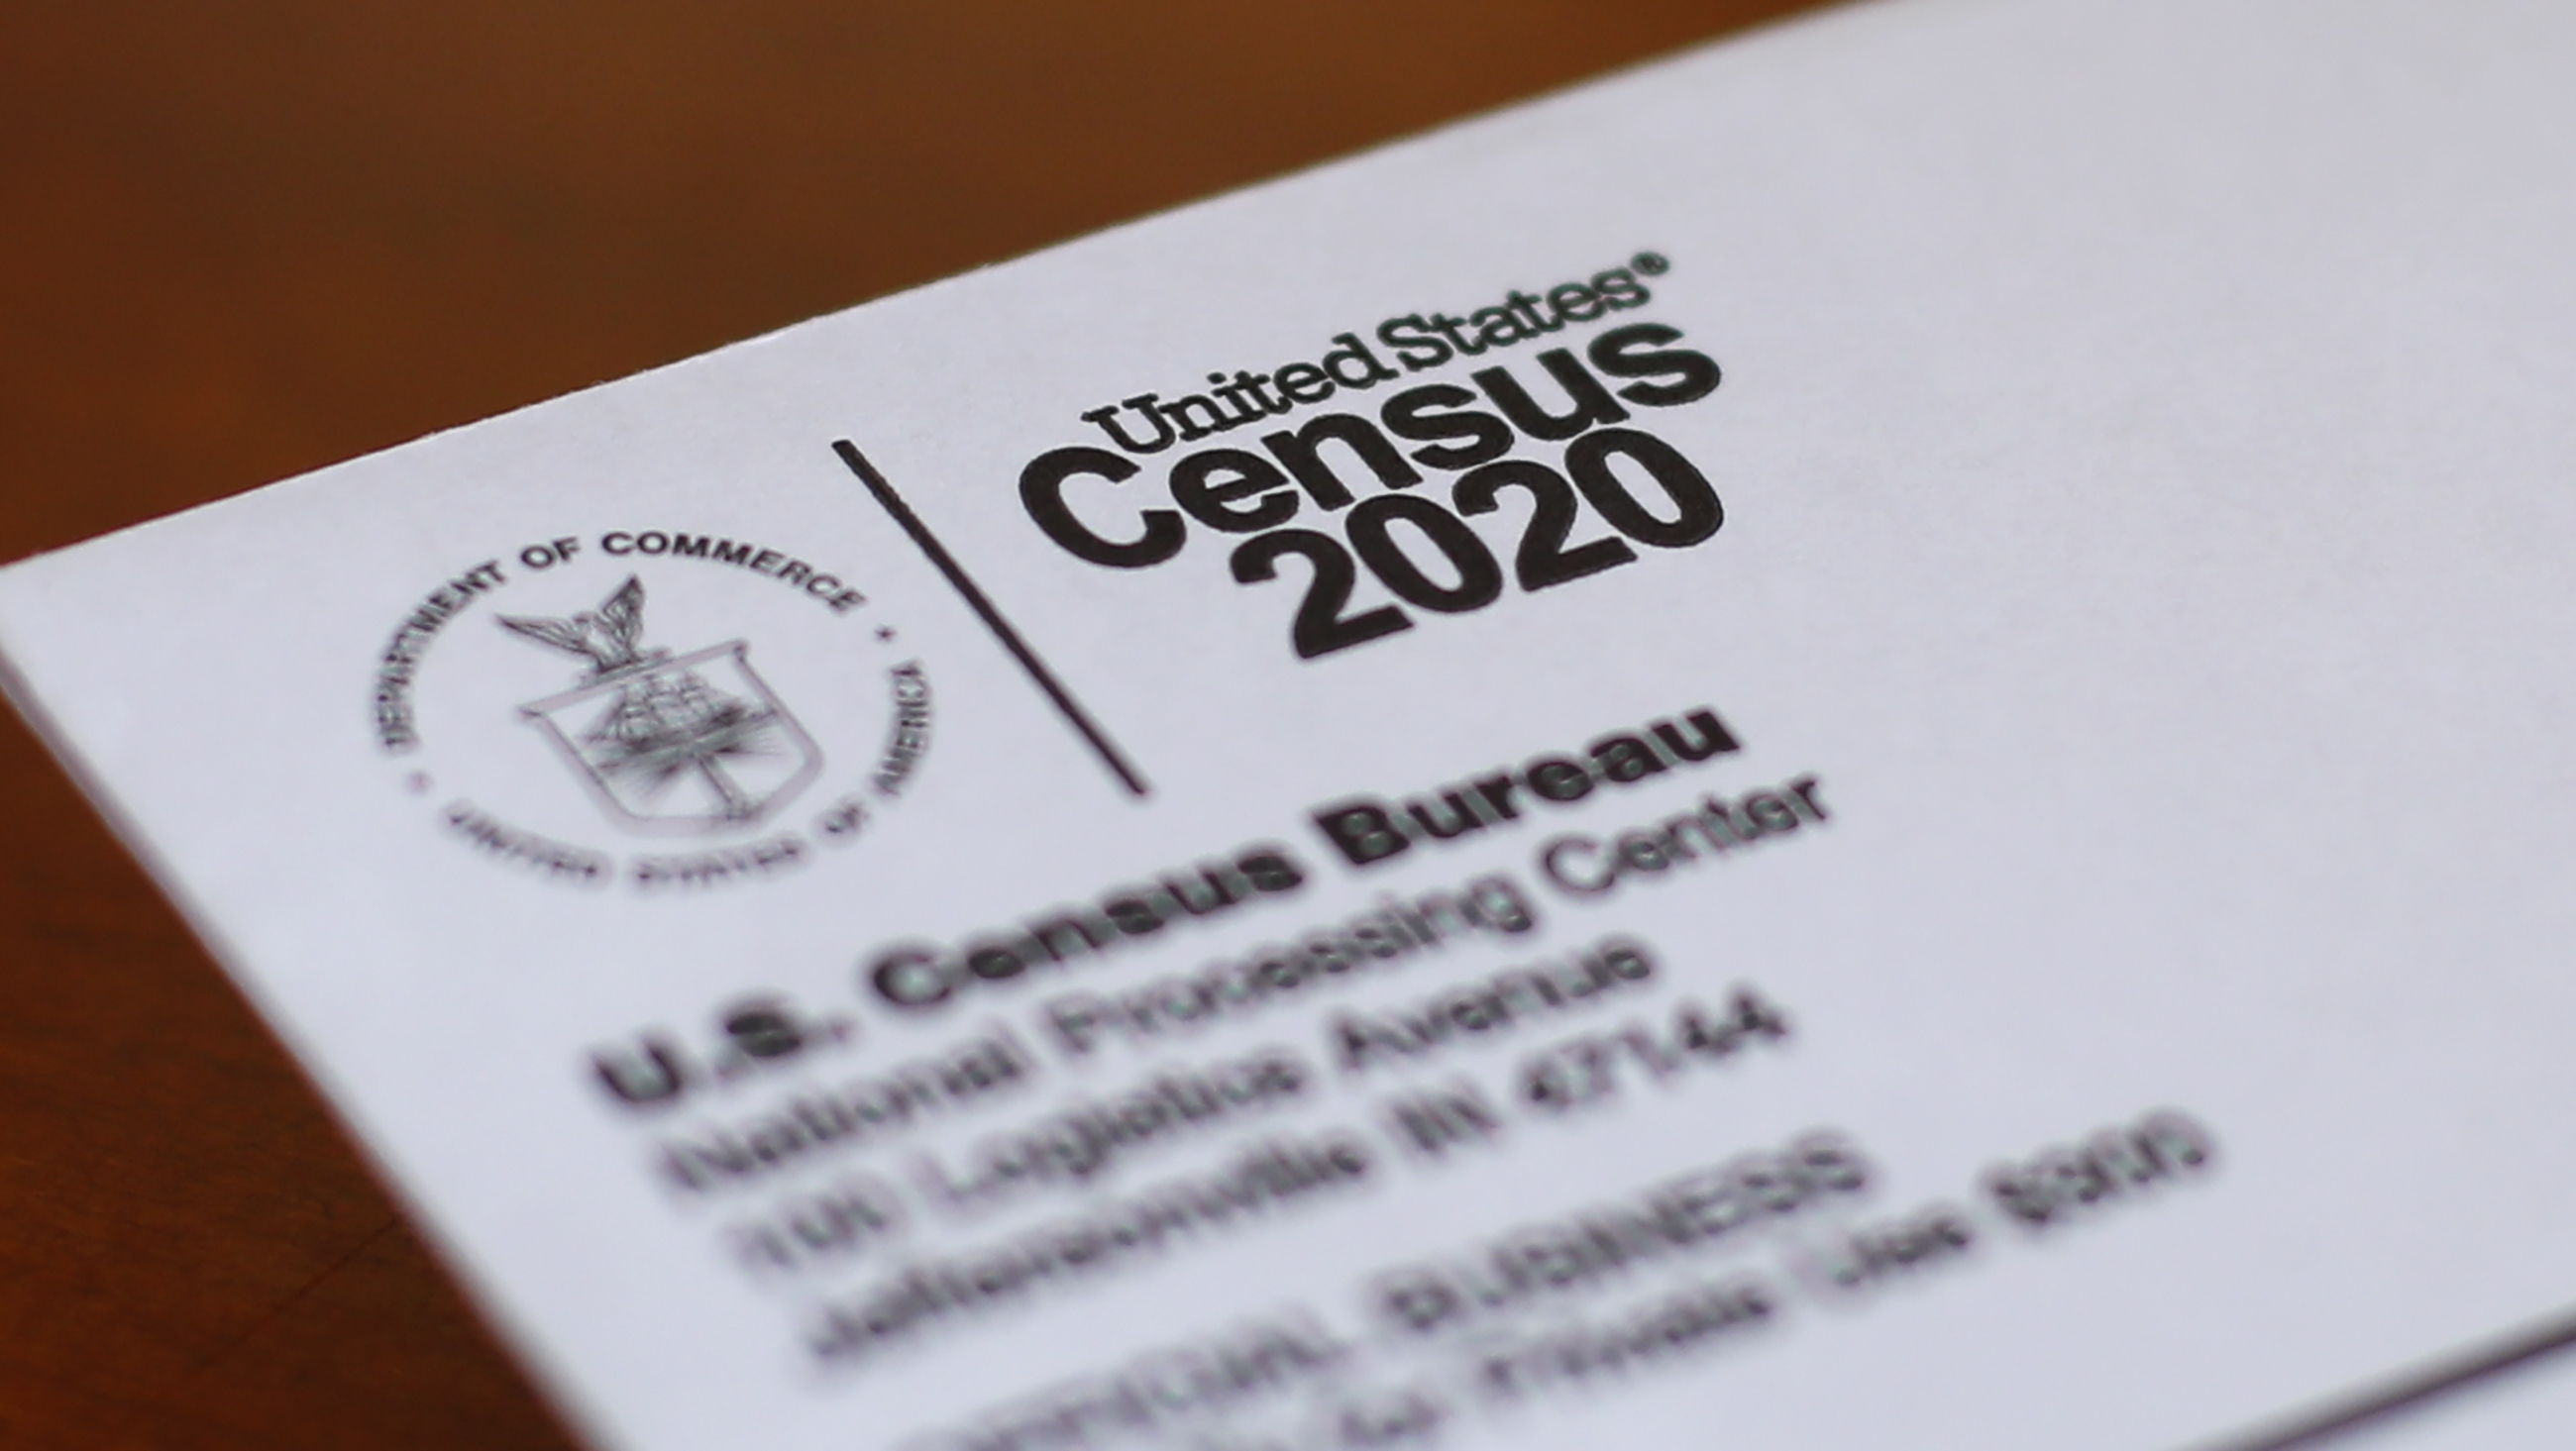 An envelope containing a 2020 census letter mailed to a U.S. resident in Detroit, Michigan is seen on April 5, 2020.